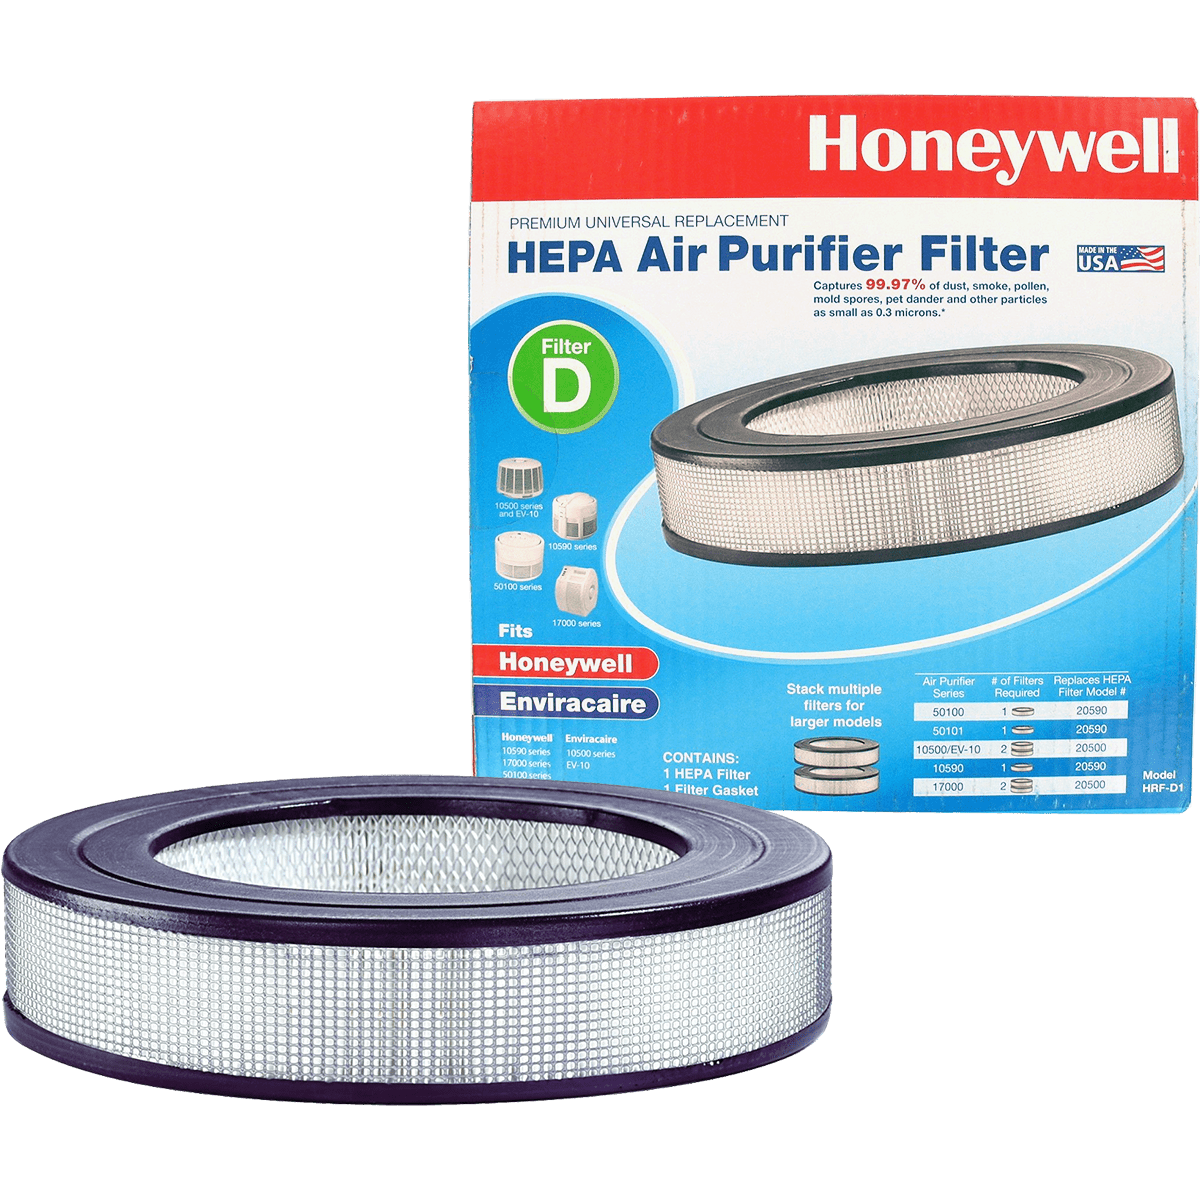 Honeywell True HEPA Filter (HRF-D1) ho2178